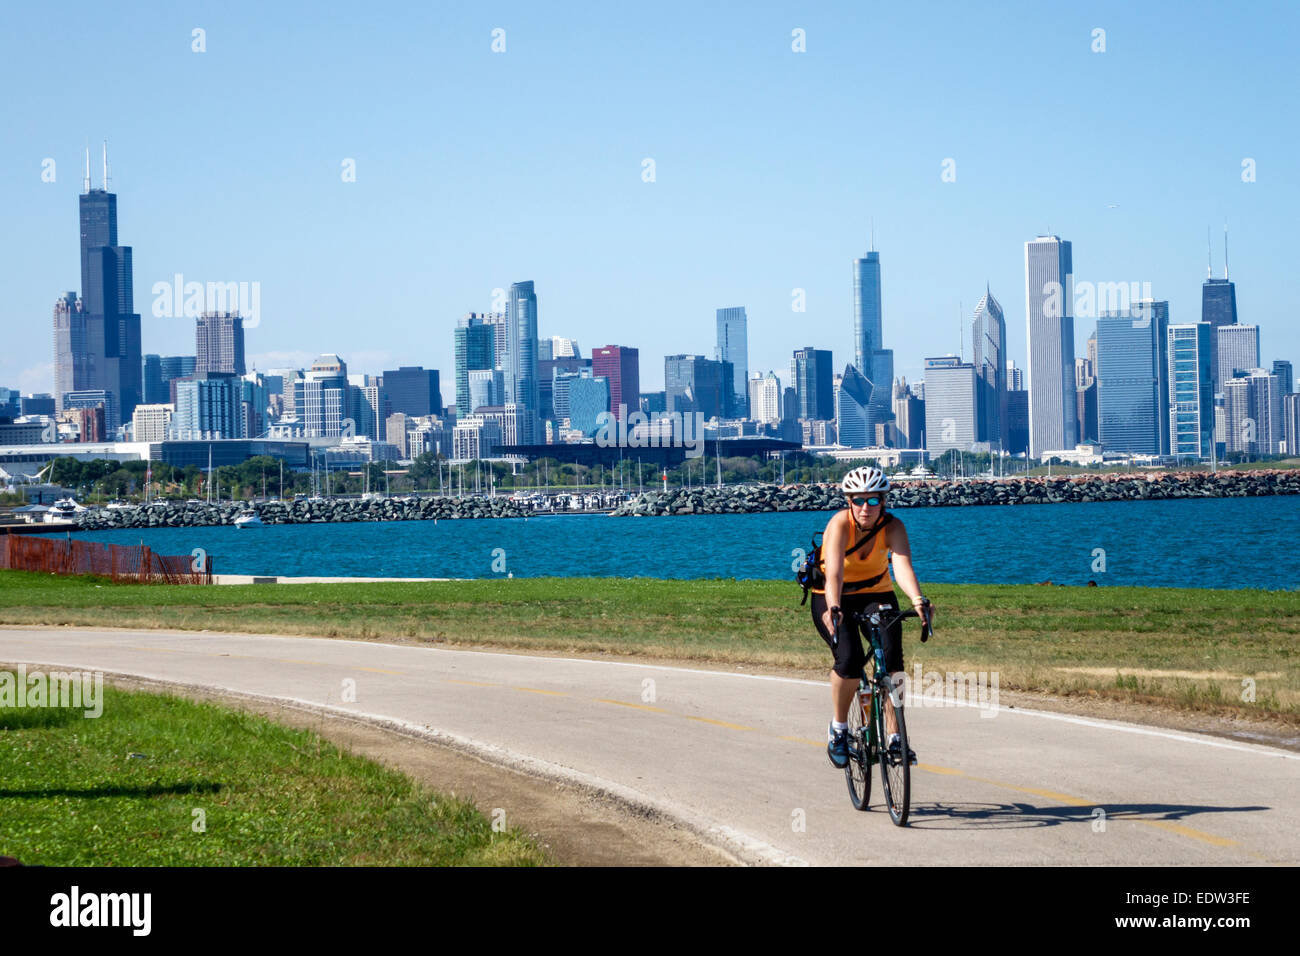 Chicago Illinois South Side Lake Michigan 39th Street Beach Lakefront Trail woman biker bicycle riding city skyline - Stock Image